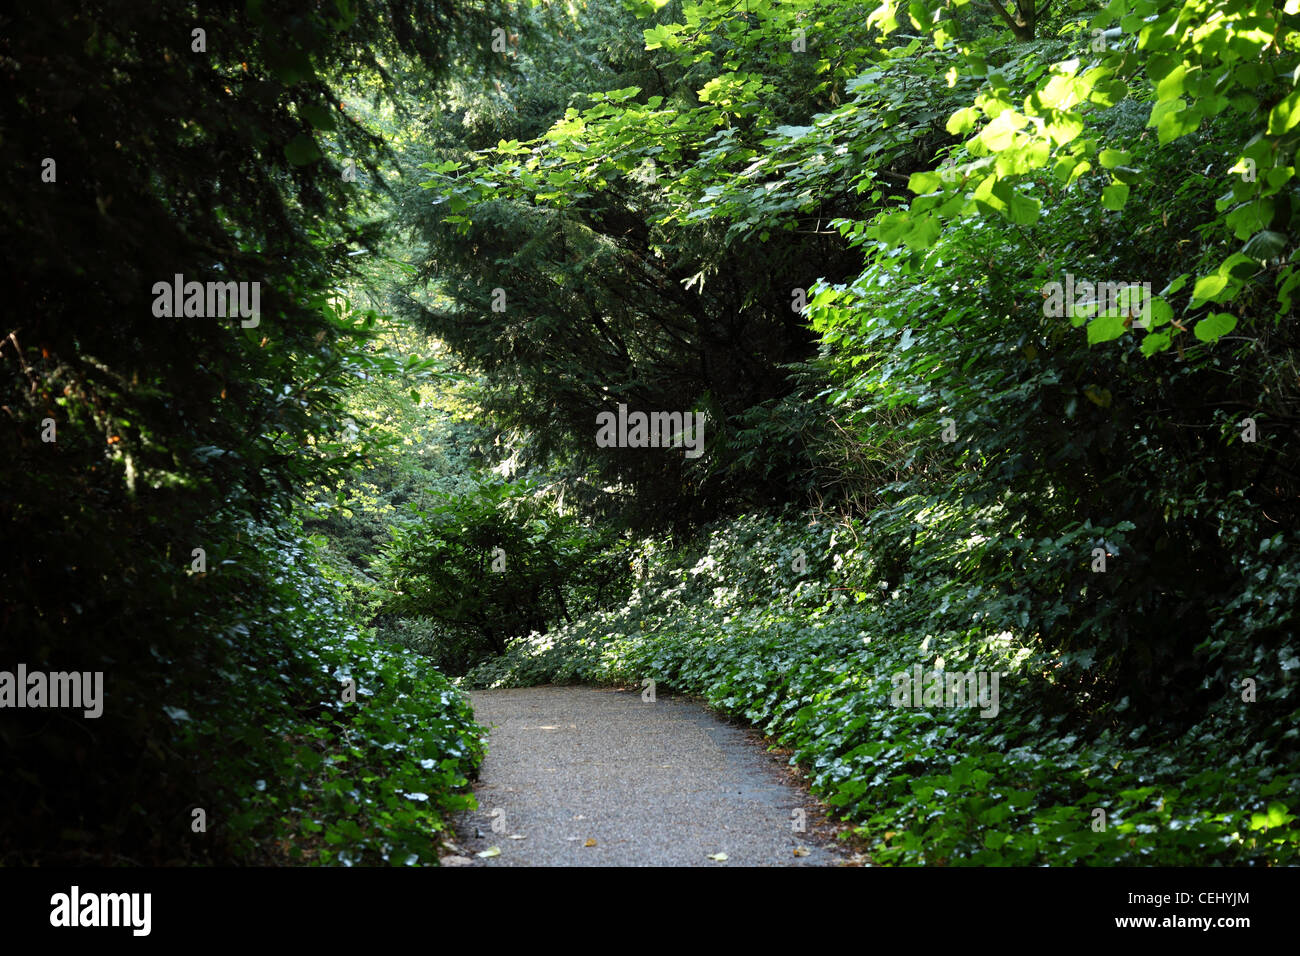 A tarmac pathway through a deeply wooded area, high hedges on both sides - Stock Image